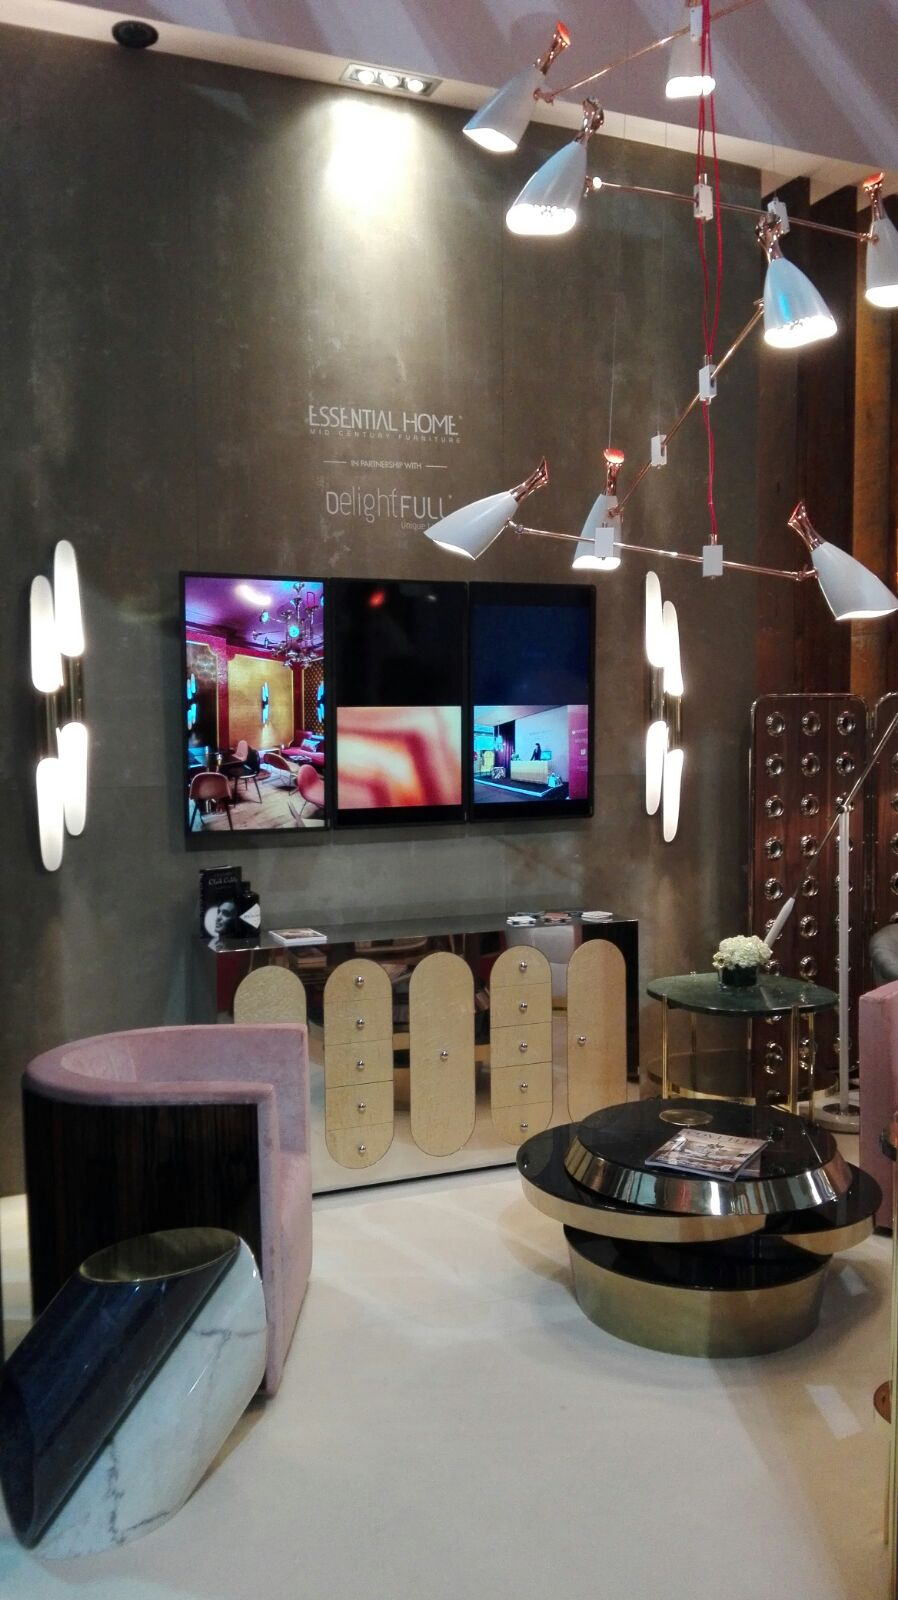 DelightFULL at Salone Mobile Milano '16 highlights of the 1st day EH